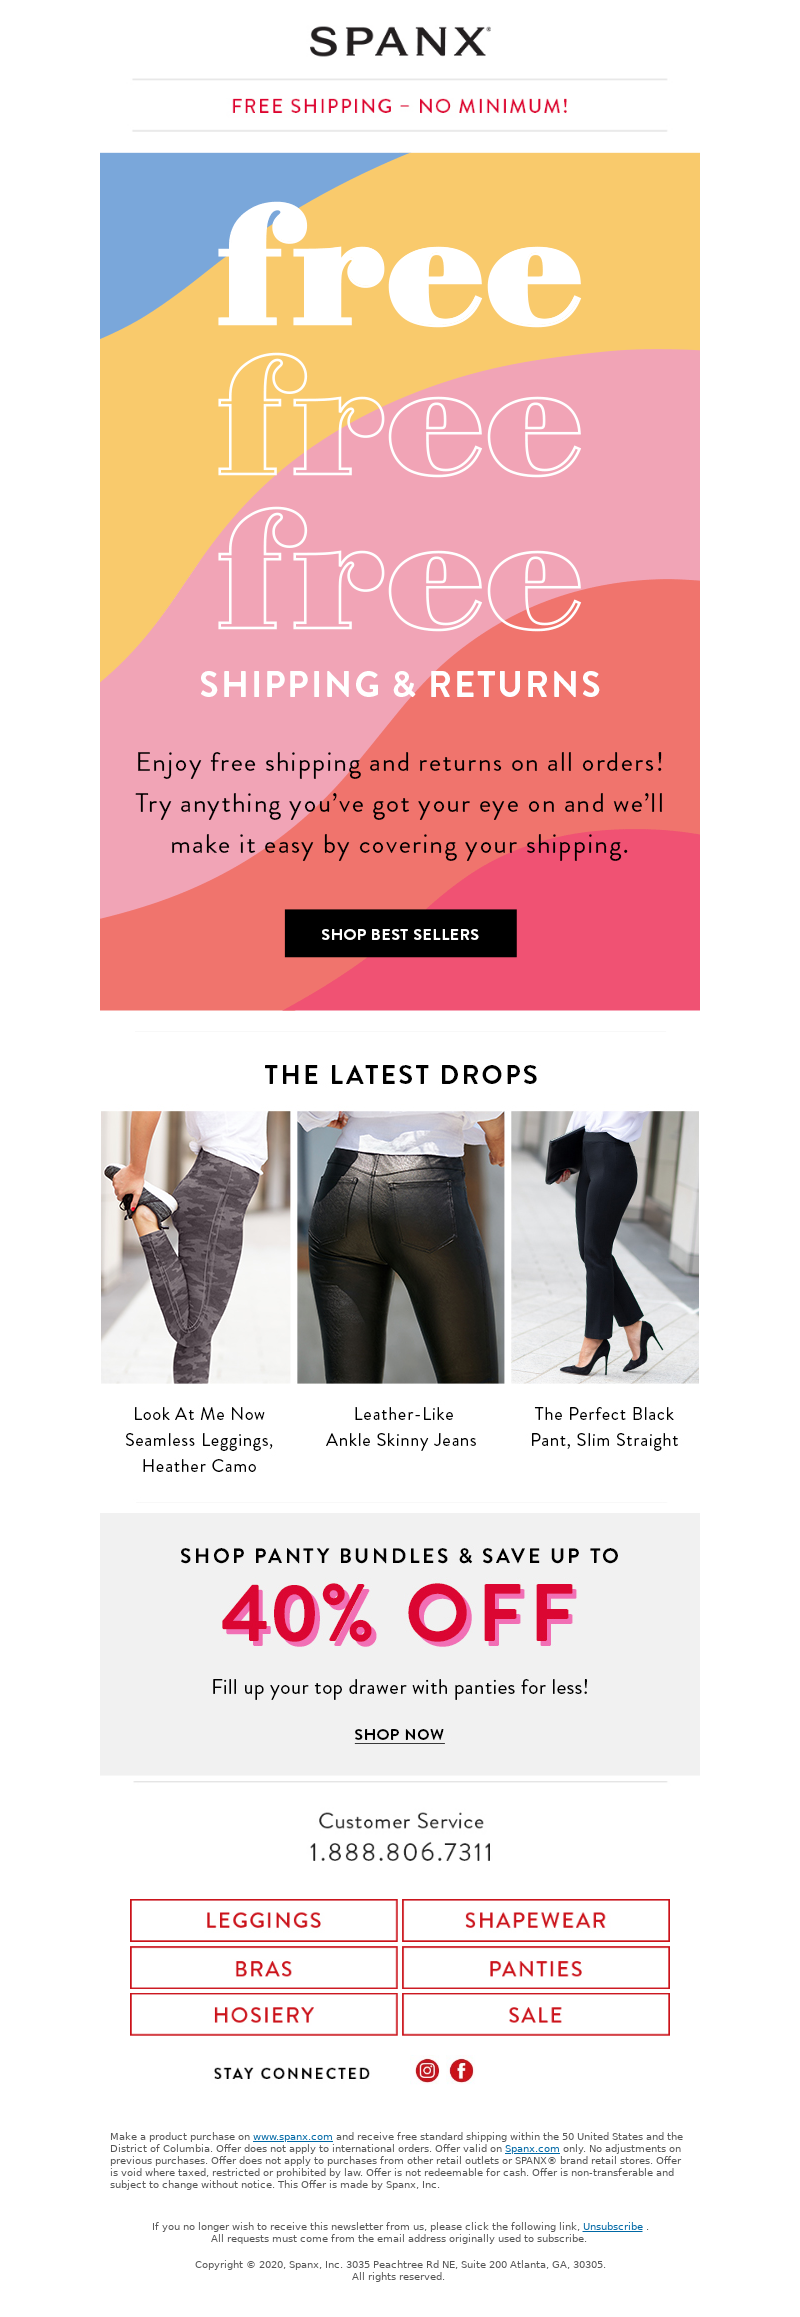 Spanx - Free Shipping & Returns, on us!